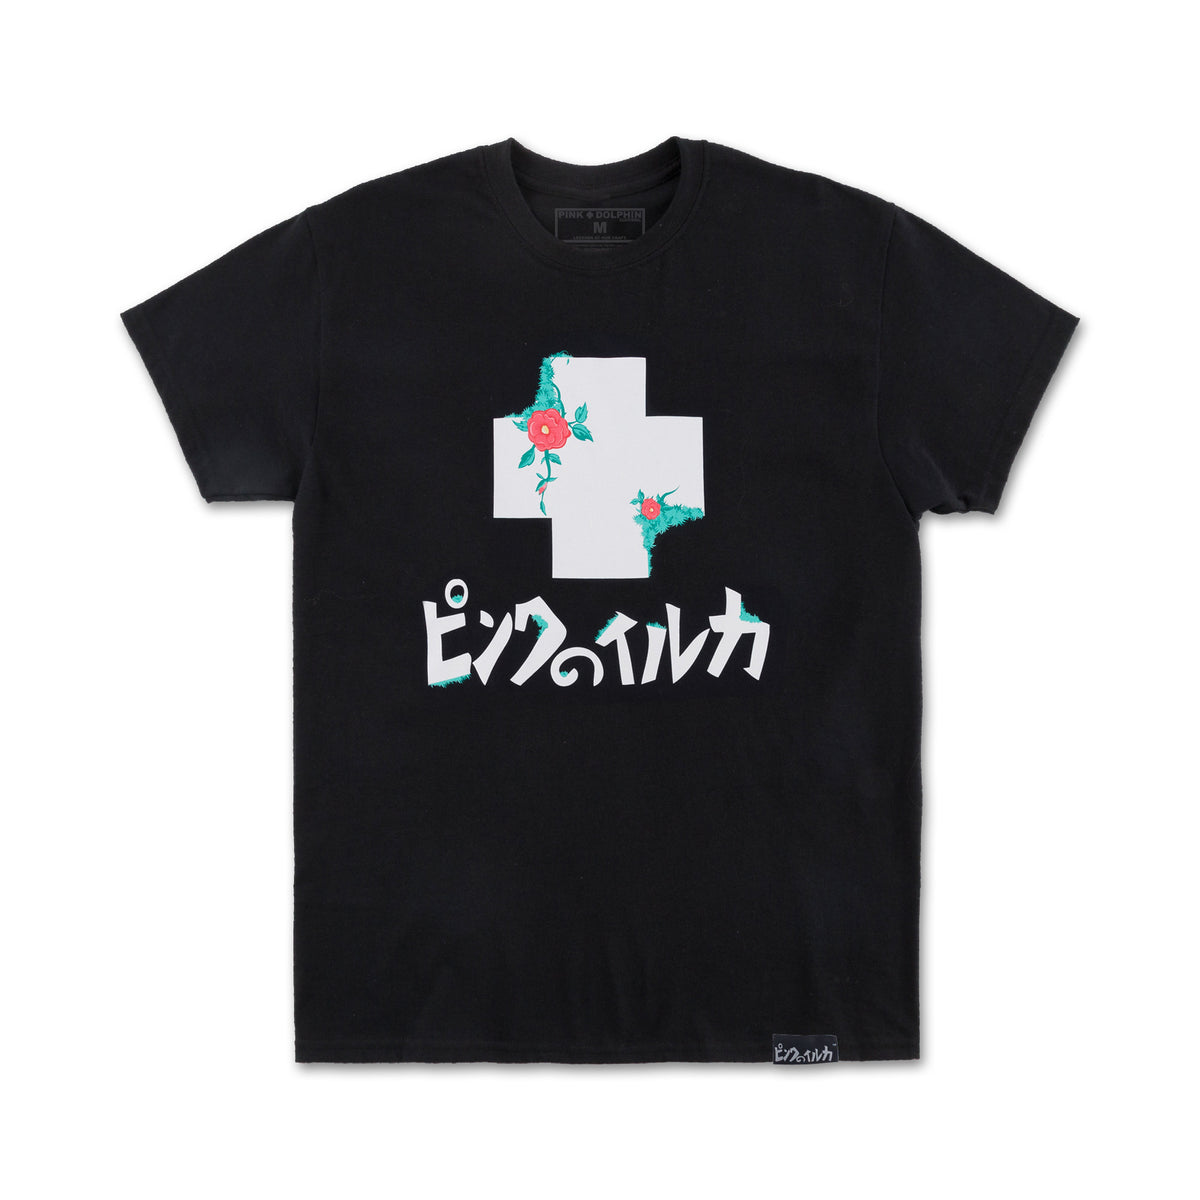 GROWTH PROMO TEE - cosign1975